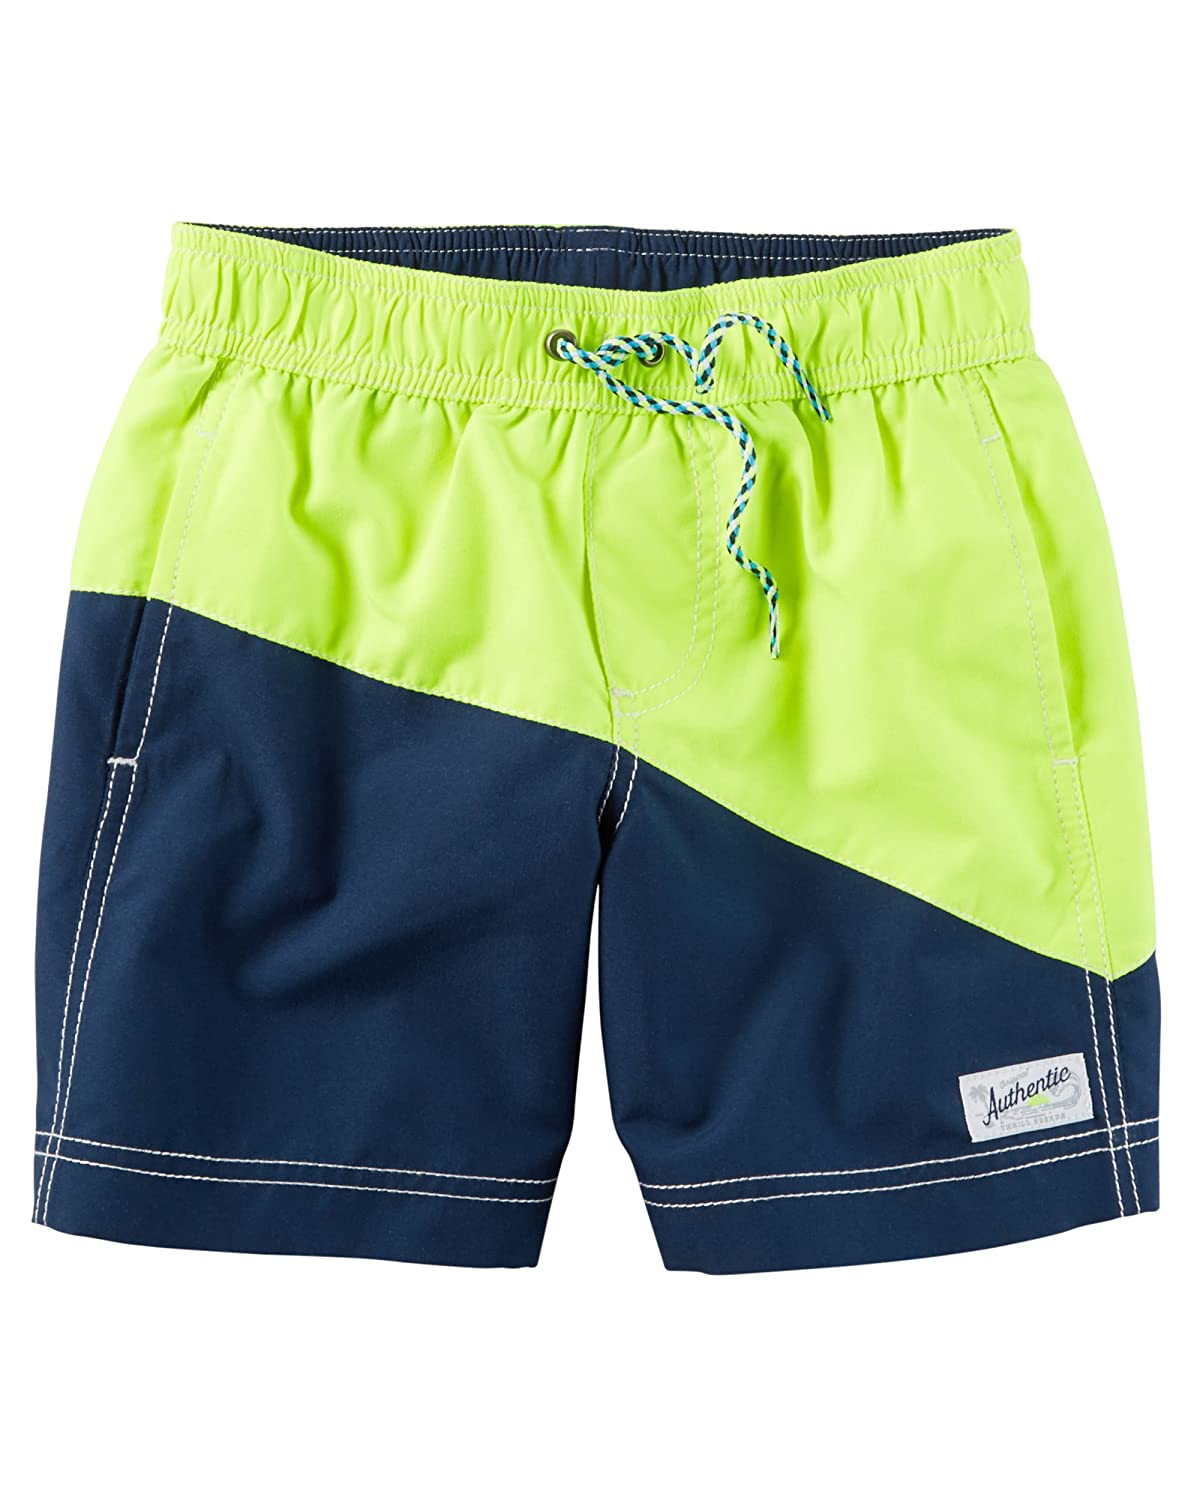 Carter's Little Boys' Swim Trunks Carter' s